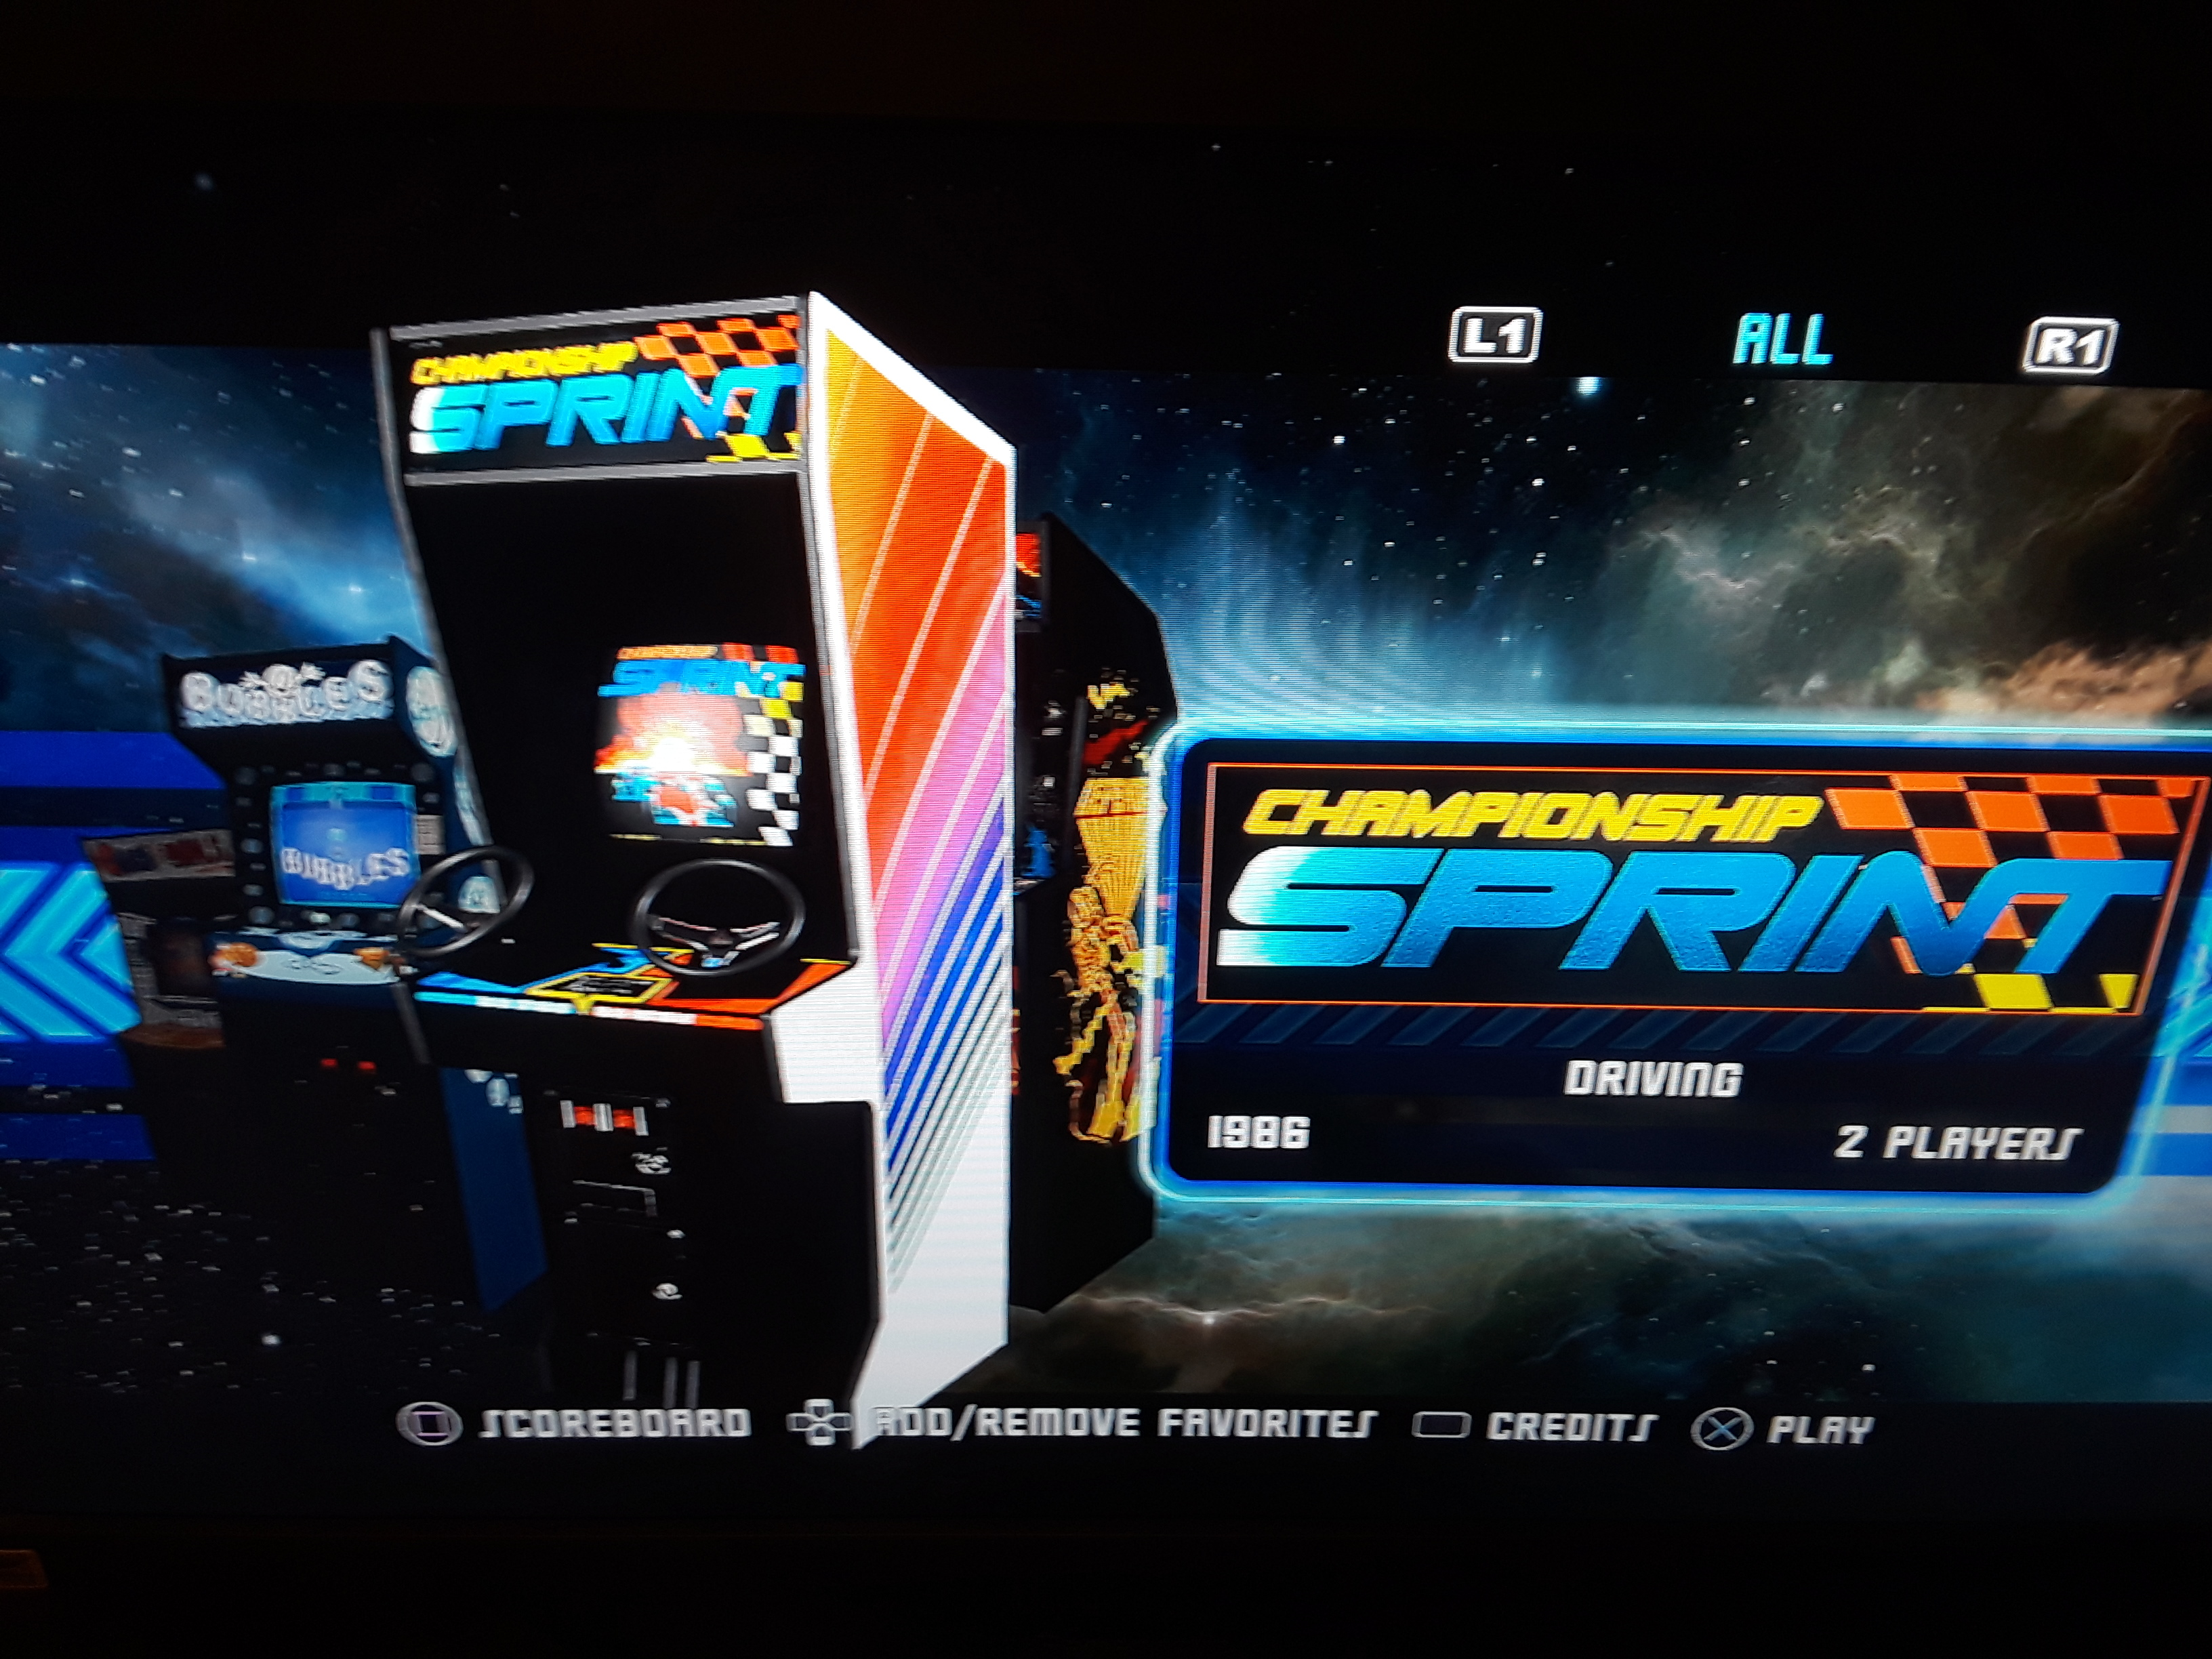 Midway Arcade Origins: Championship Sprint 2,240 points